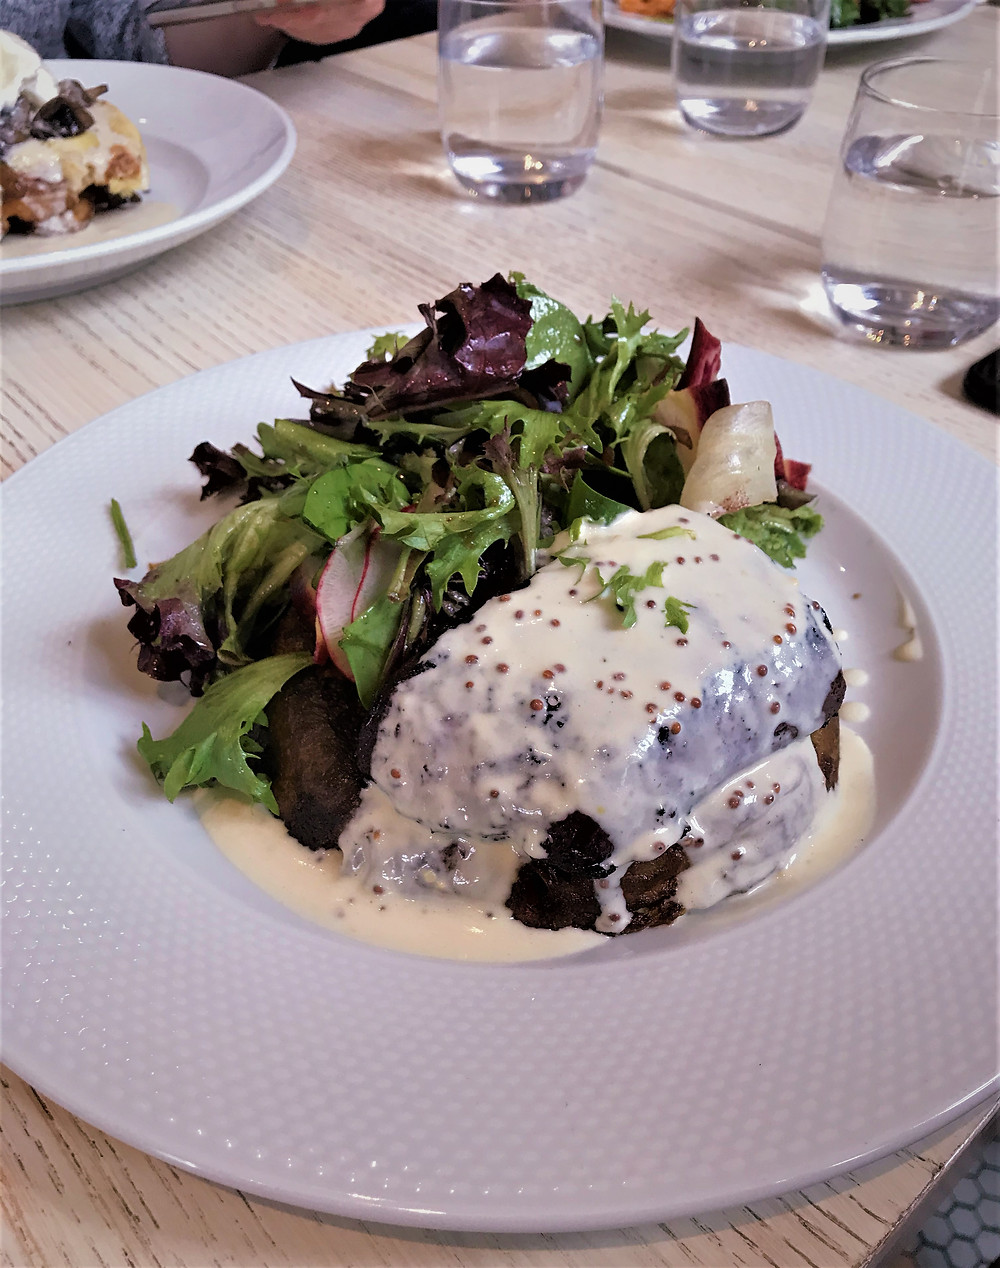 Specialty at Le Clocher Penche: homemade blood pudding